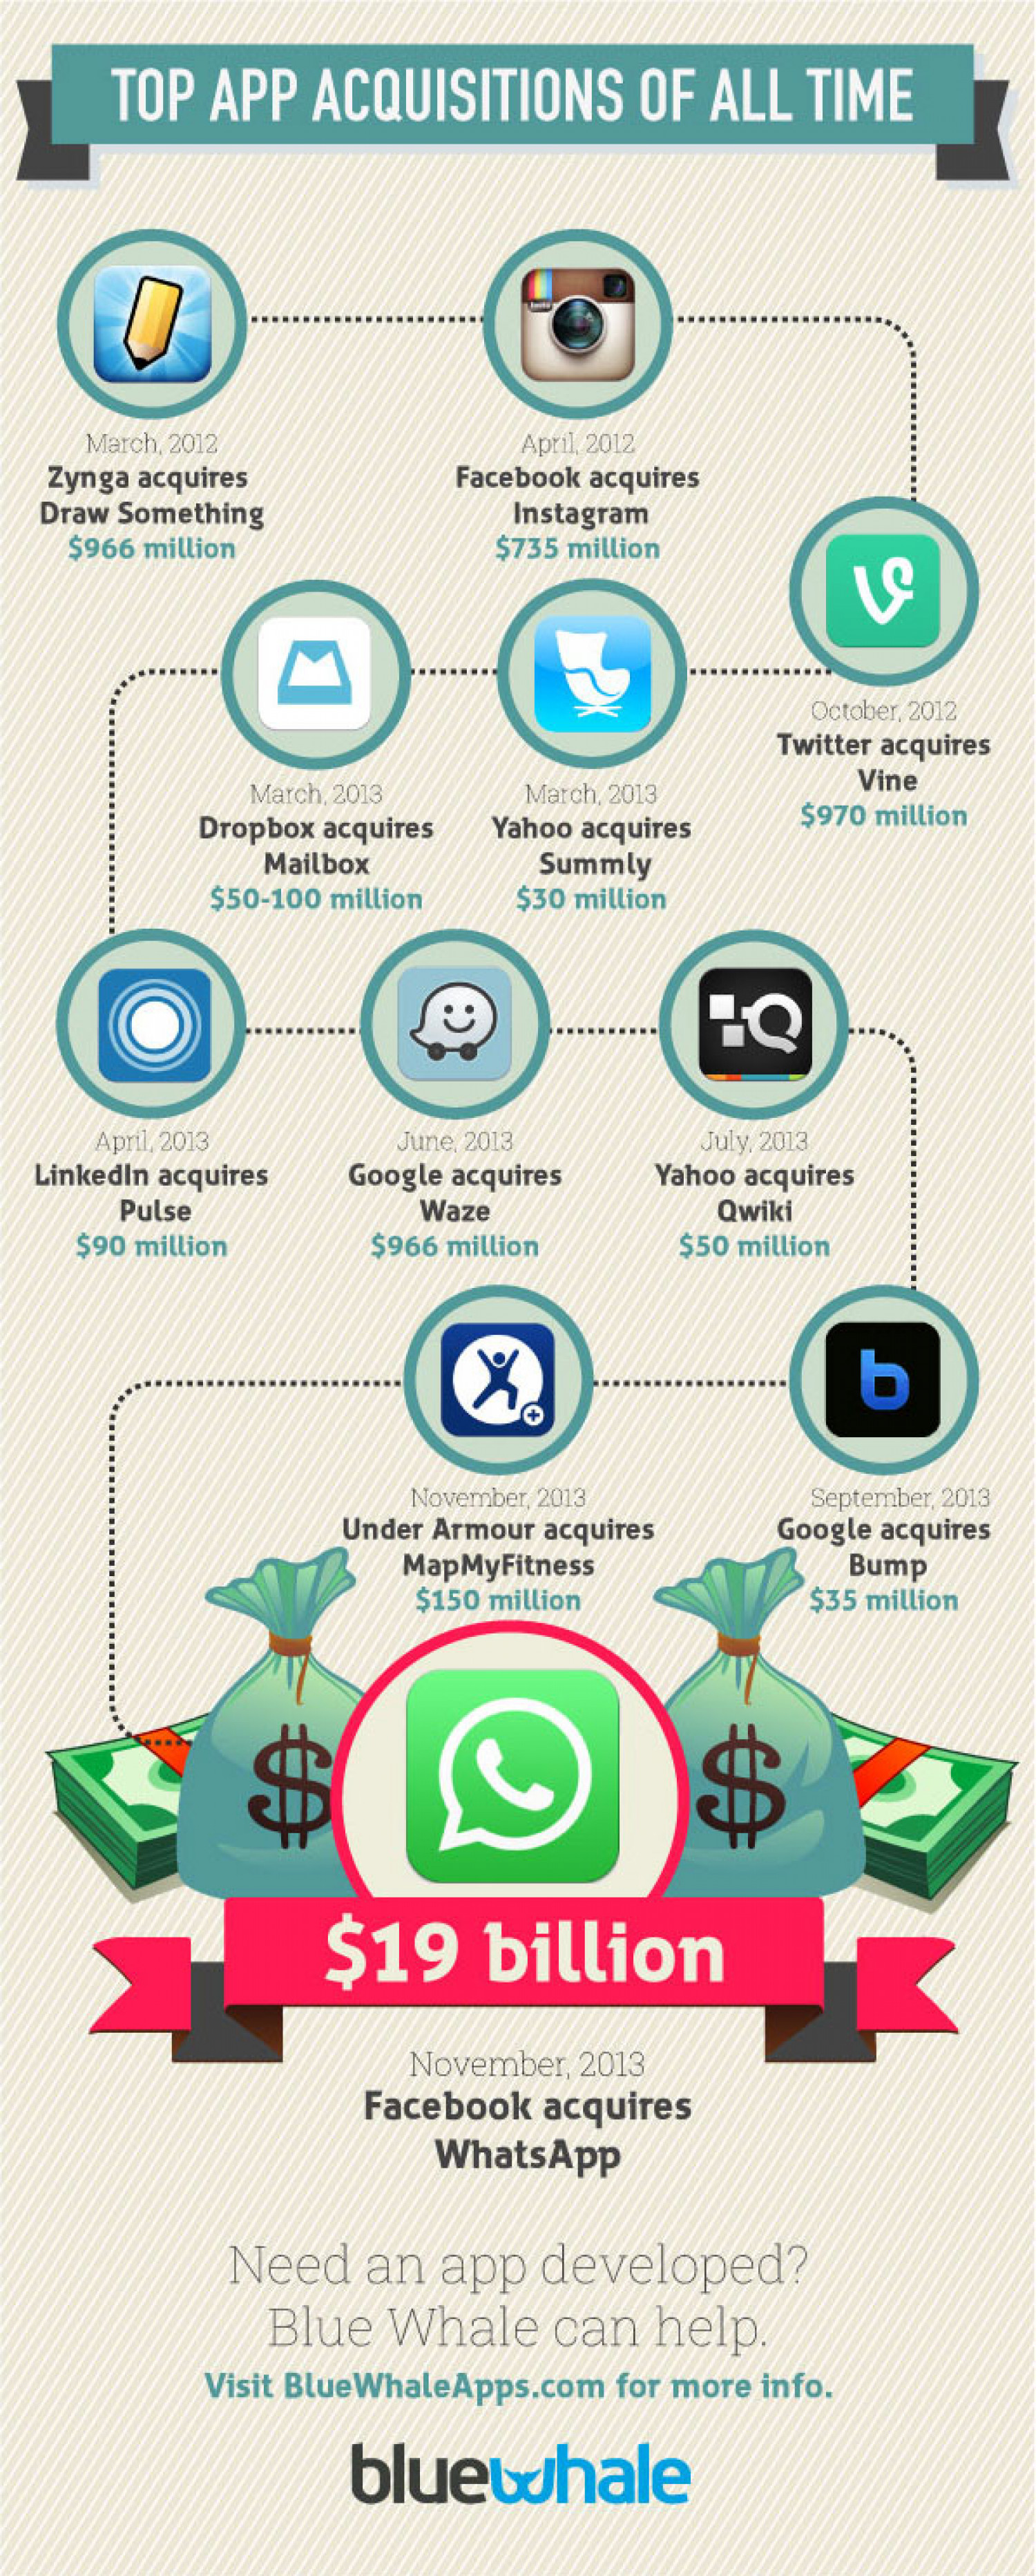 Top App Acquisitions of All Time Infographic